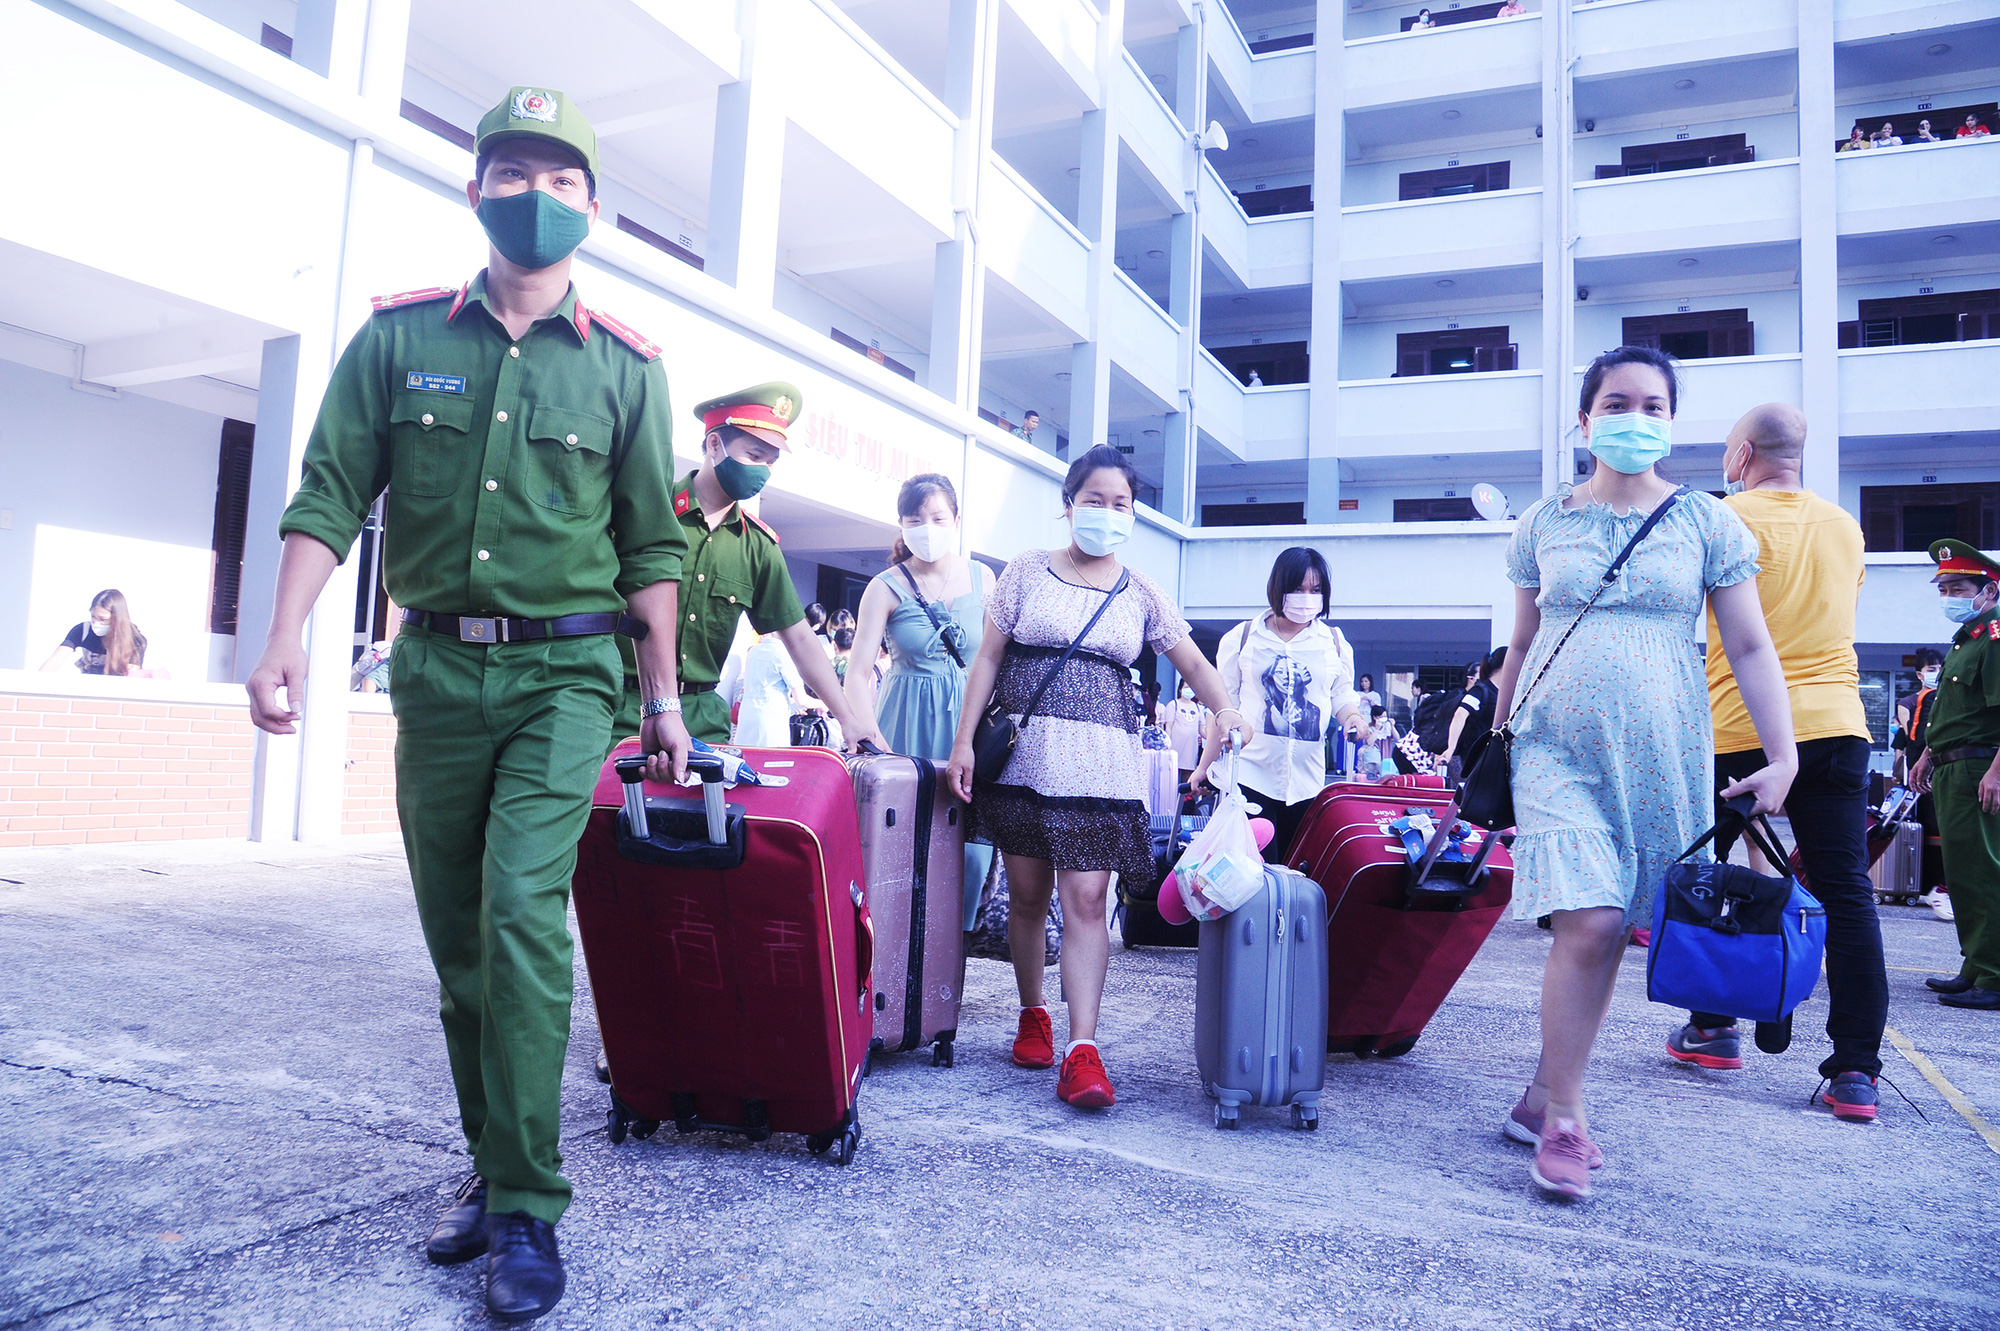 Hundreds of expectant mothers rejoice at discharge from COVID-19 quarantine zone in Vietnam